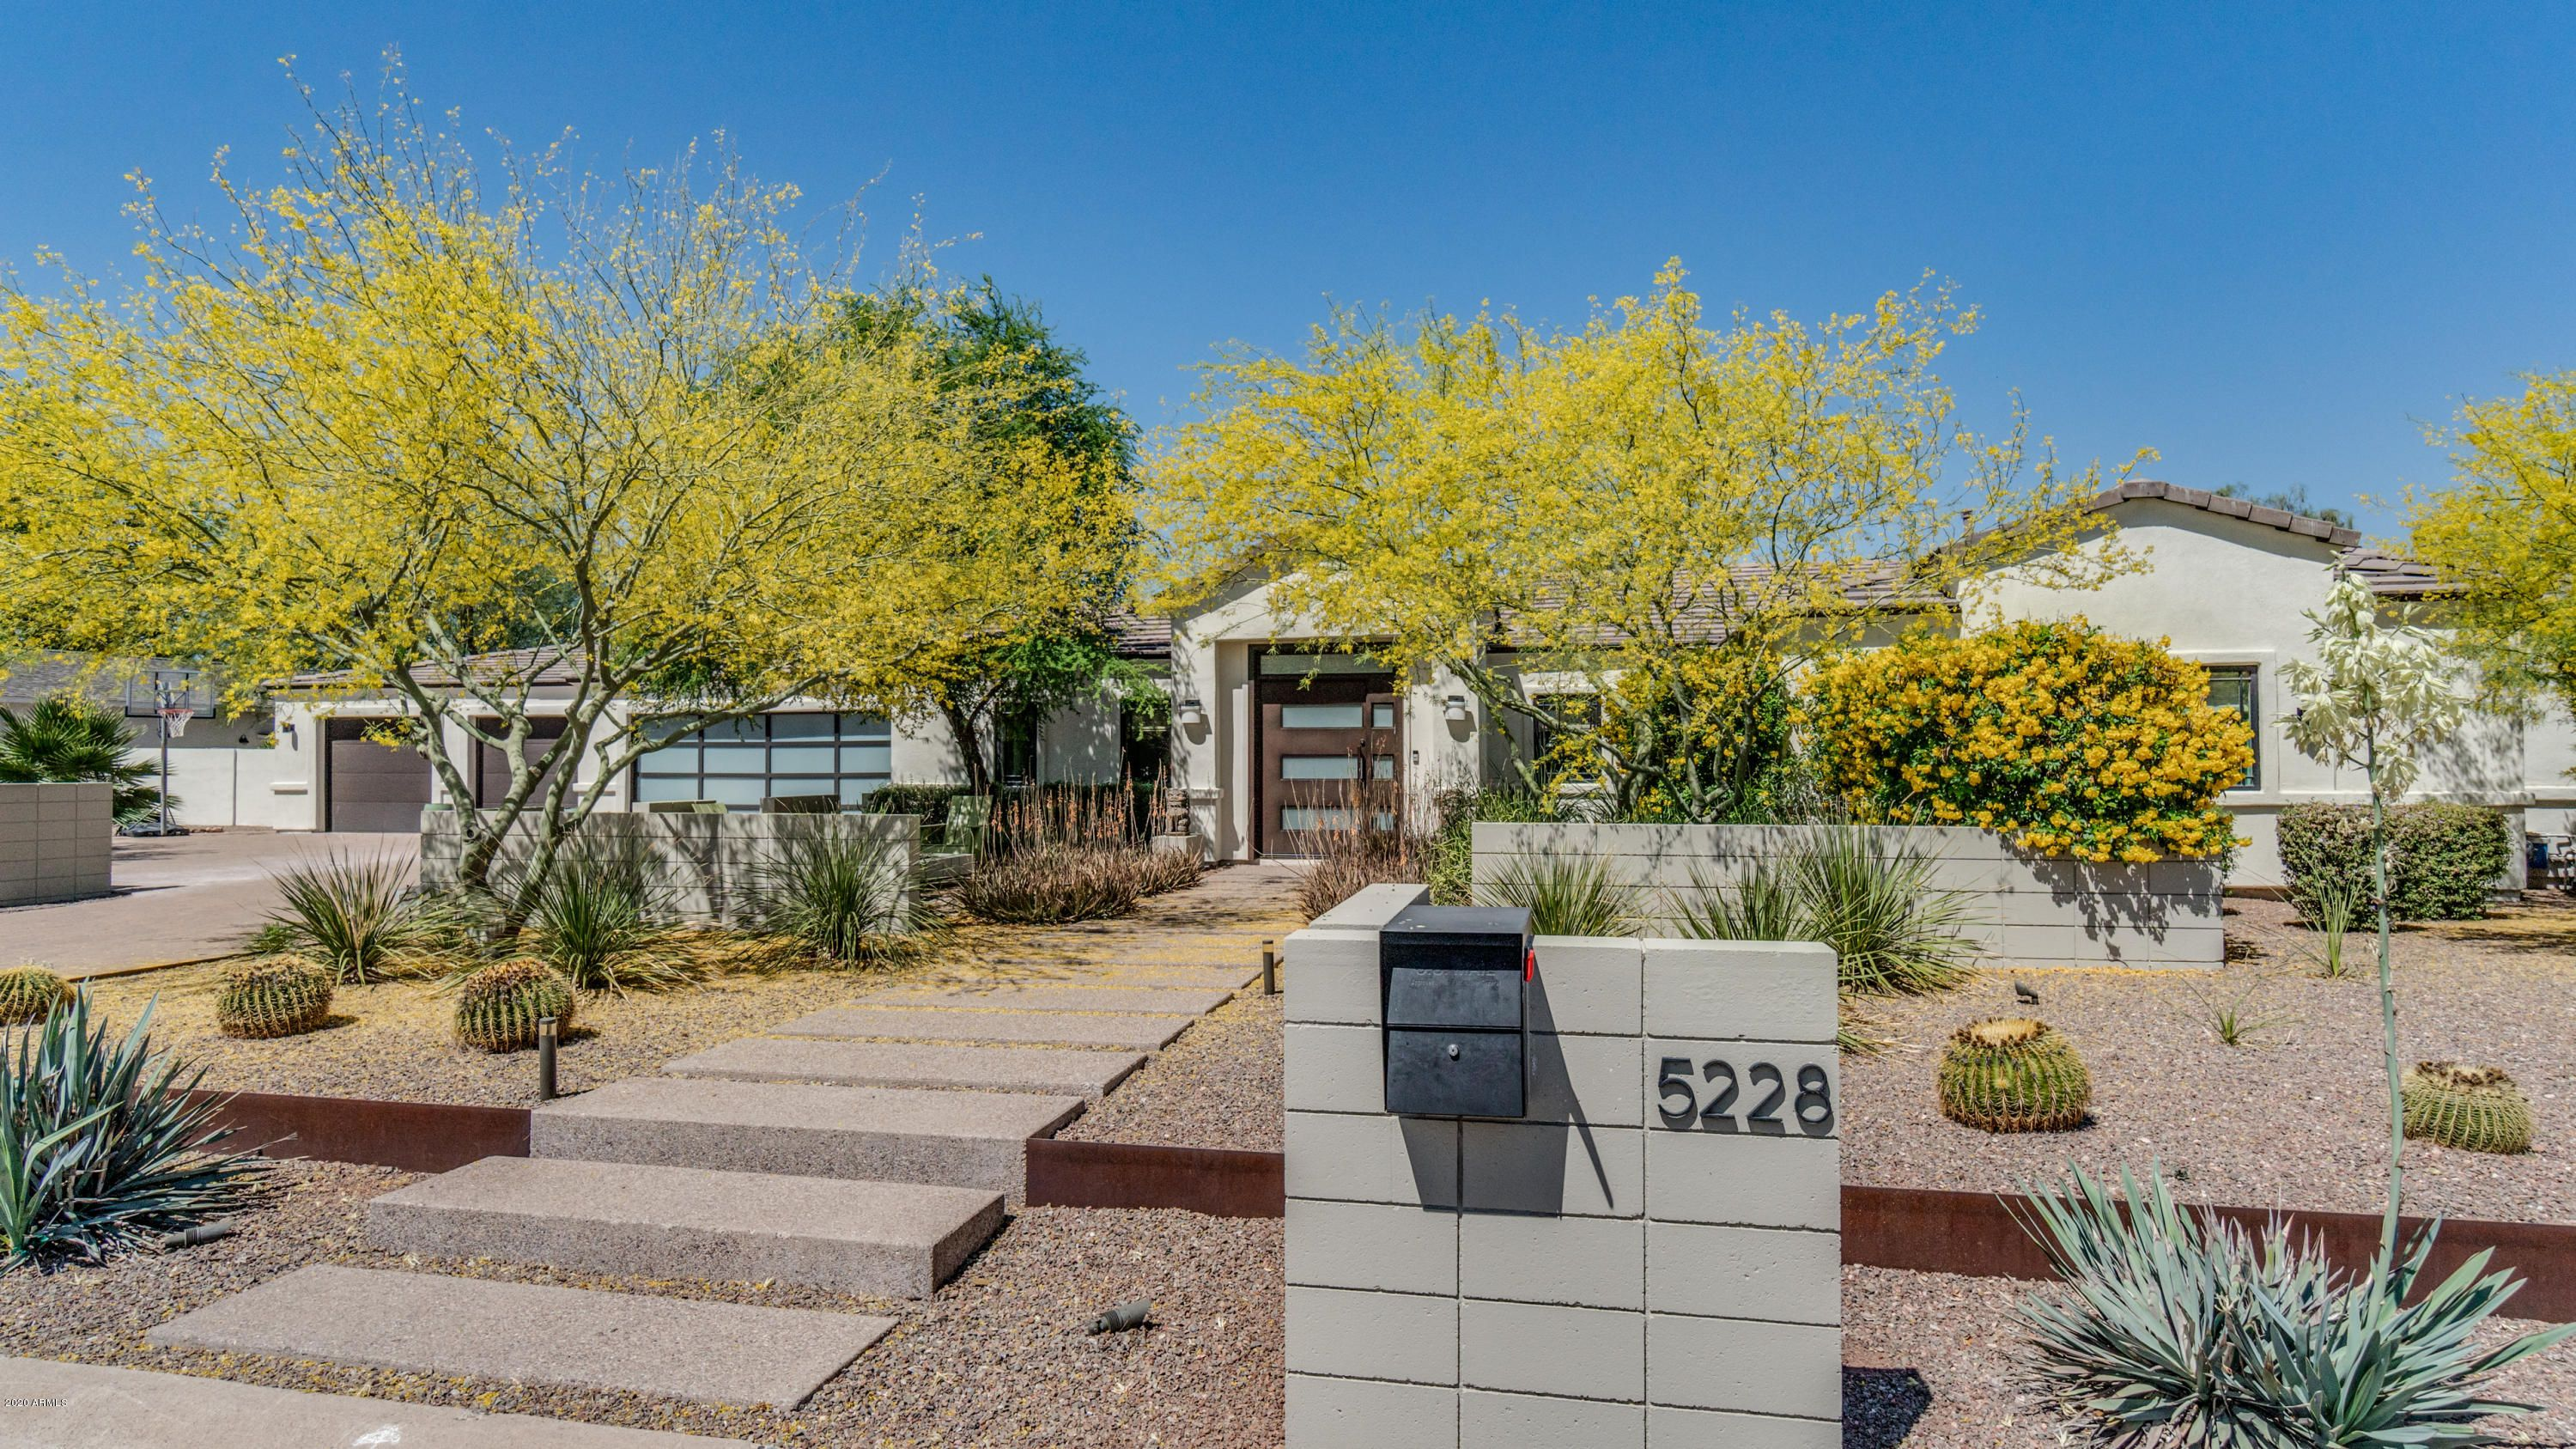 5228 N 70th Place